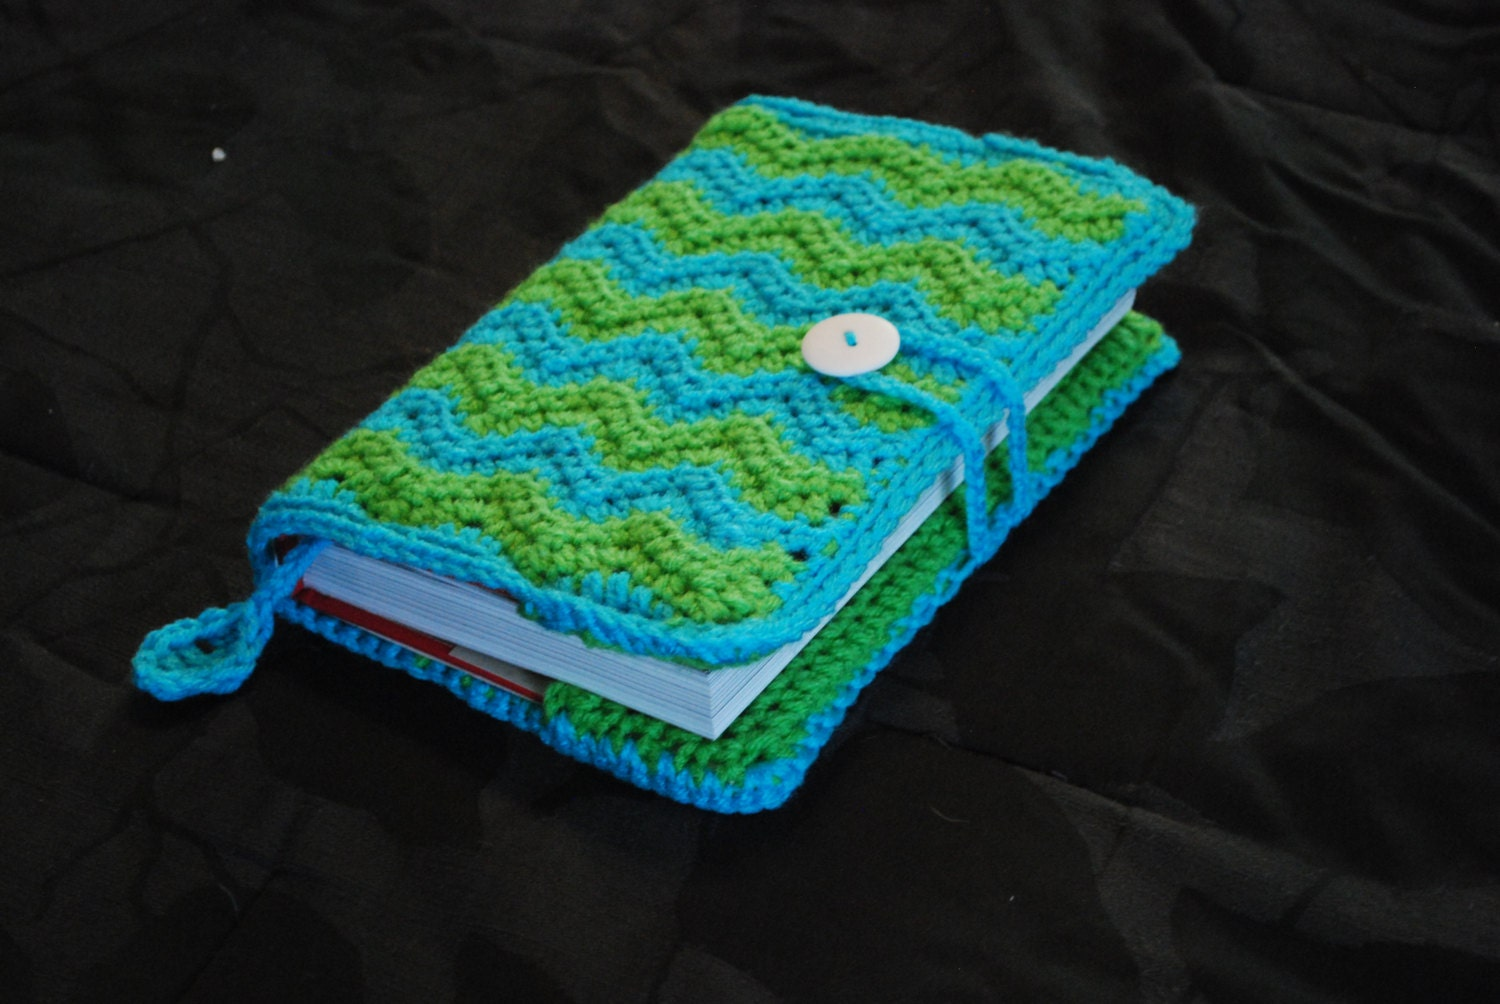 Book Cover Crochet Quilt ~ Crochet book cover chevron pattern with loop and button